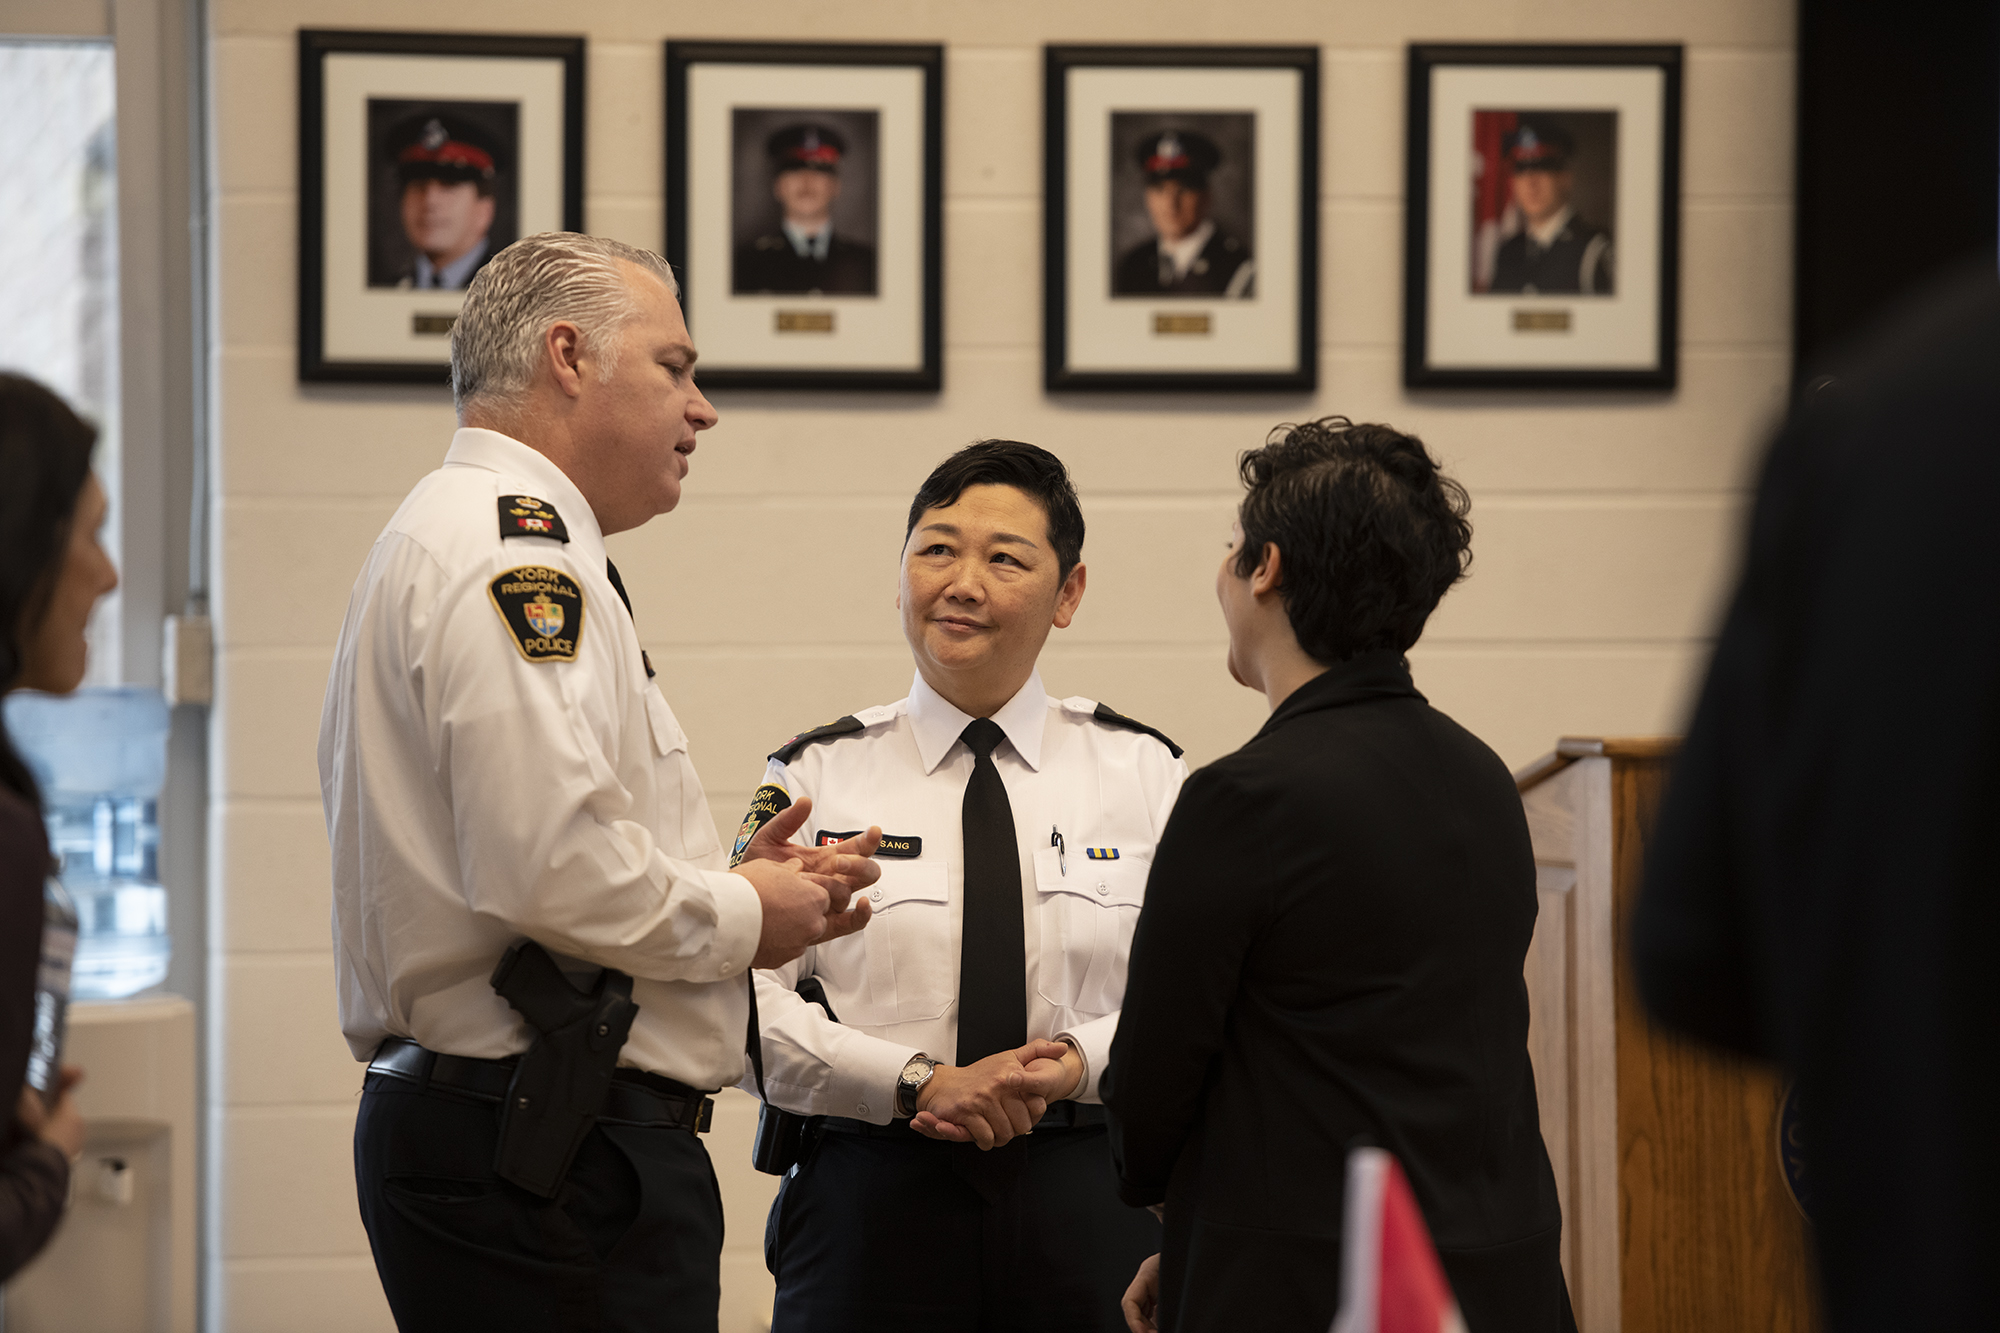 A male and female officer talk to a citizen at an event